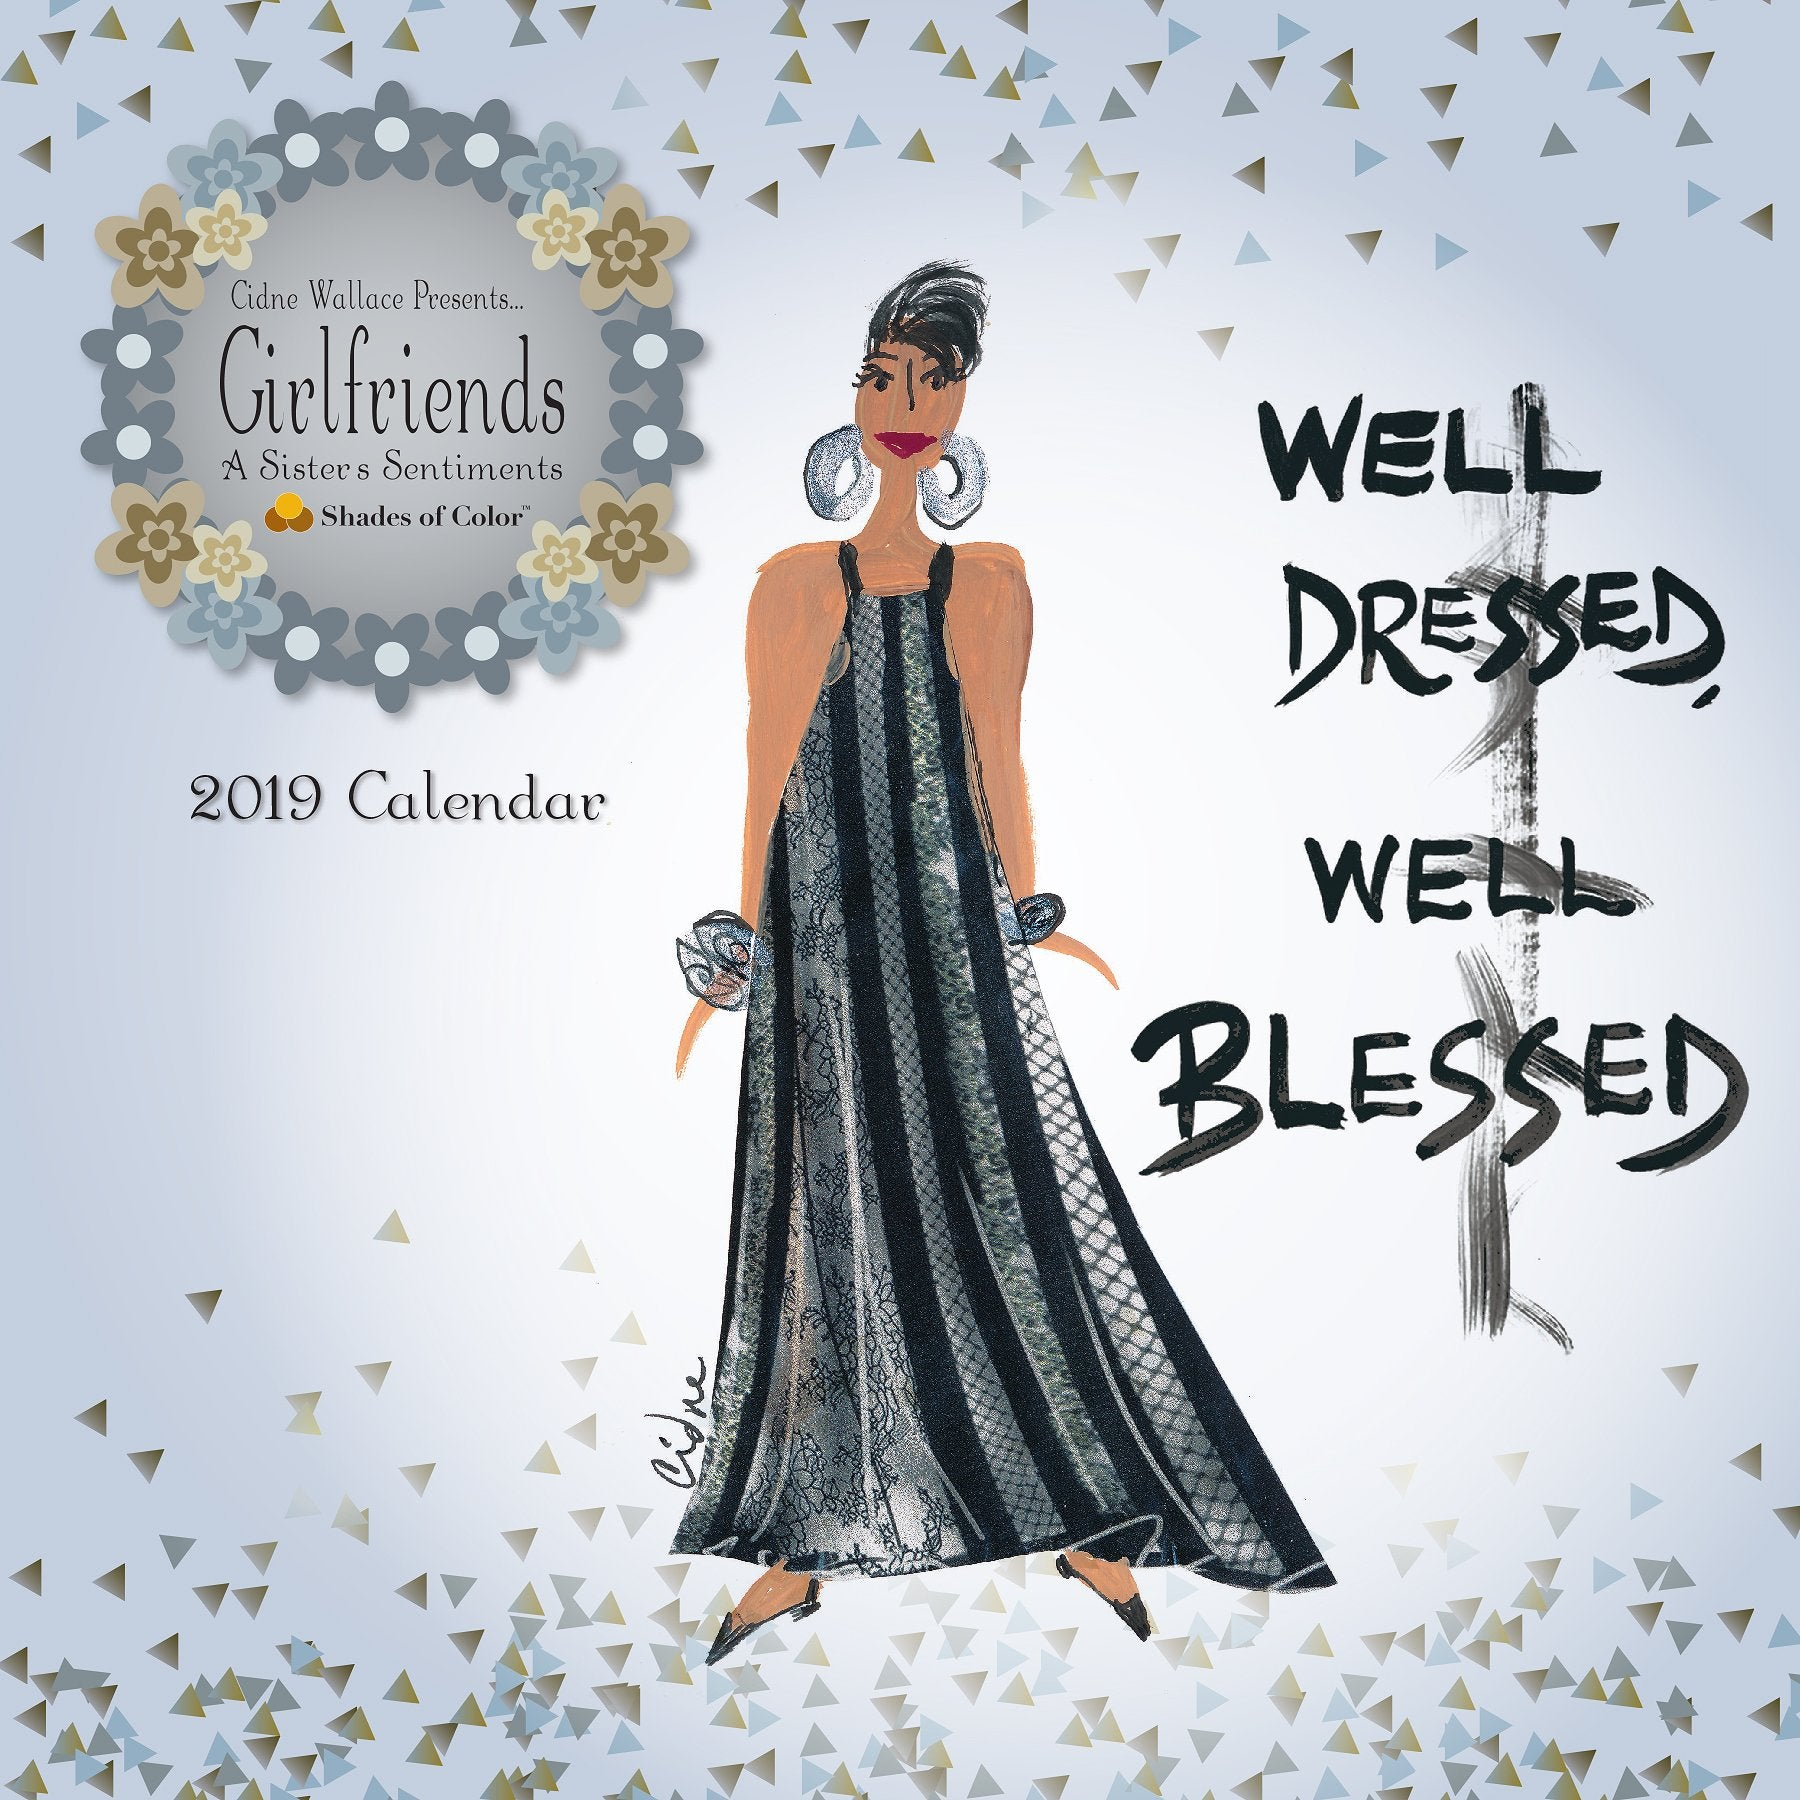 Well Dressed and Well Blessed: 2019 African American Calendar by Cidne Wallace (Front)